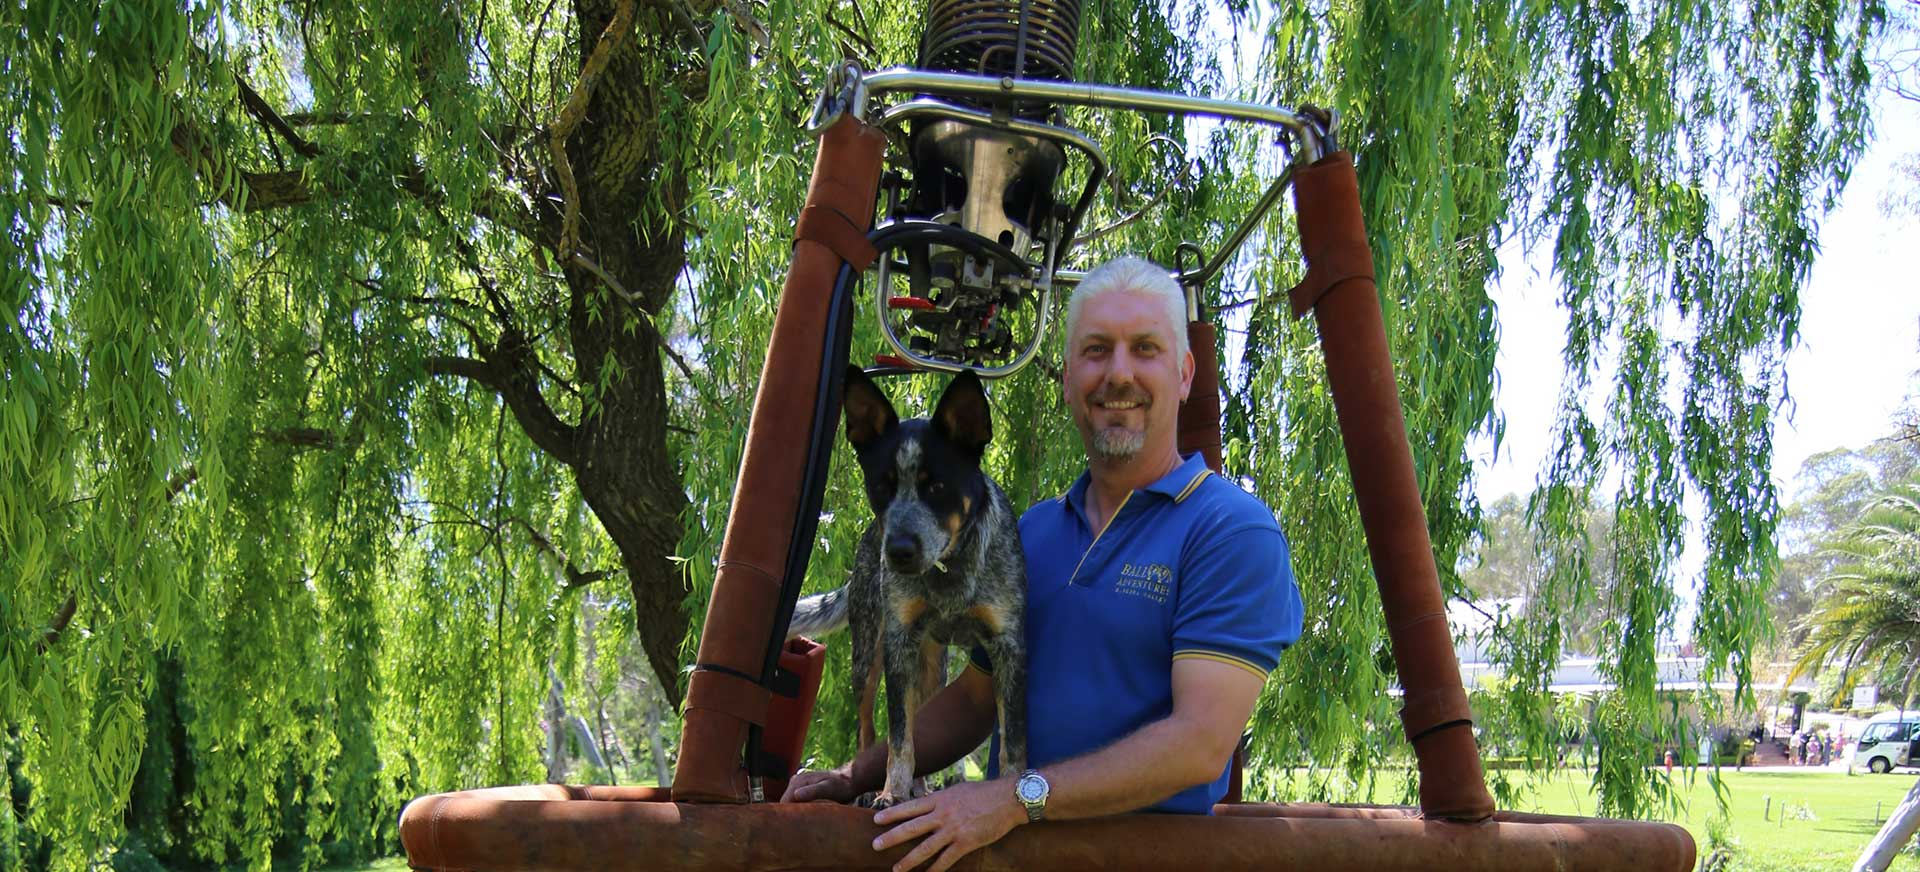 balloon Adventures pilot Justin Stein with German Shepherd